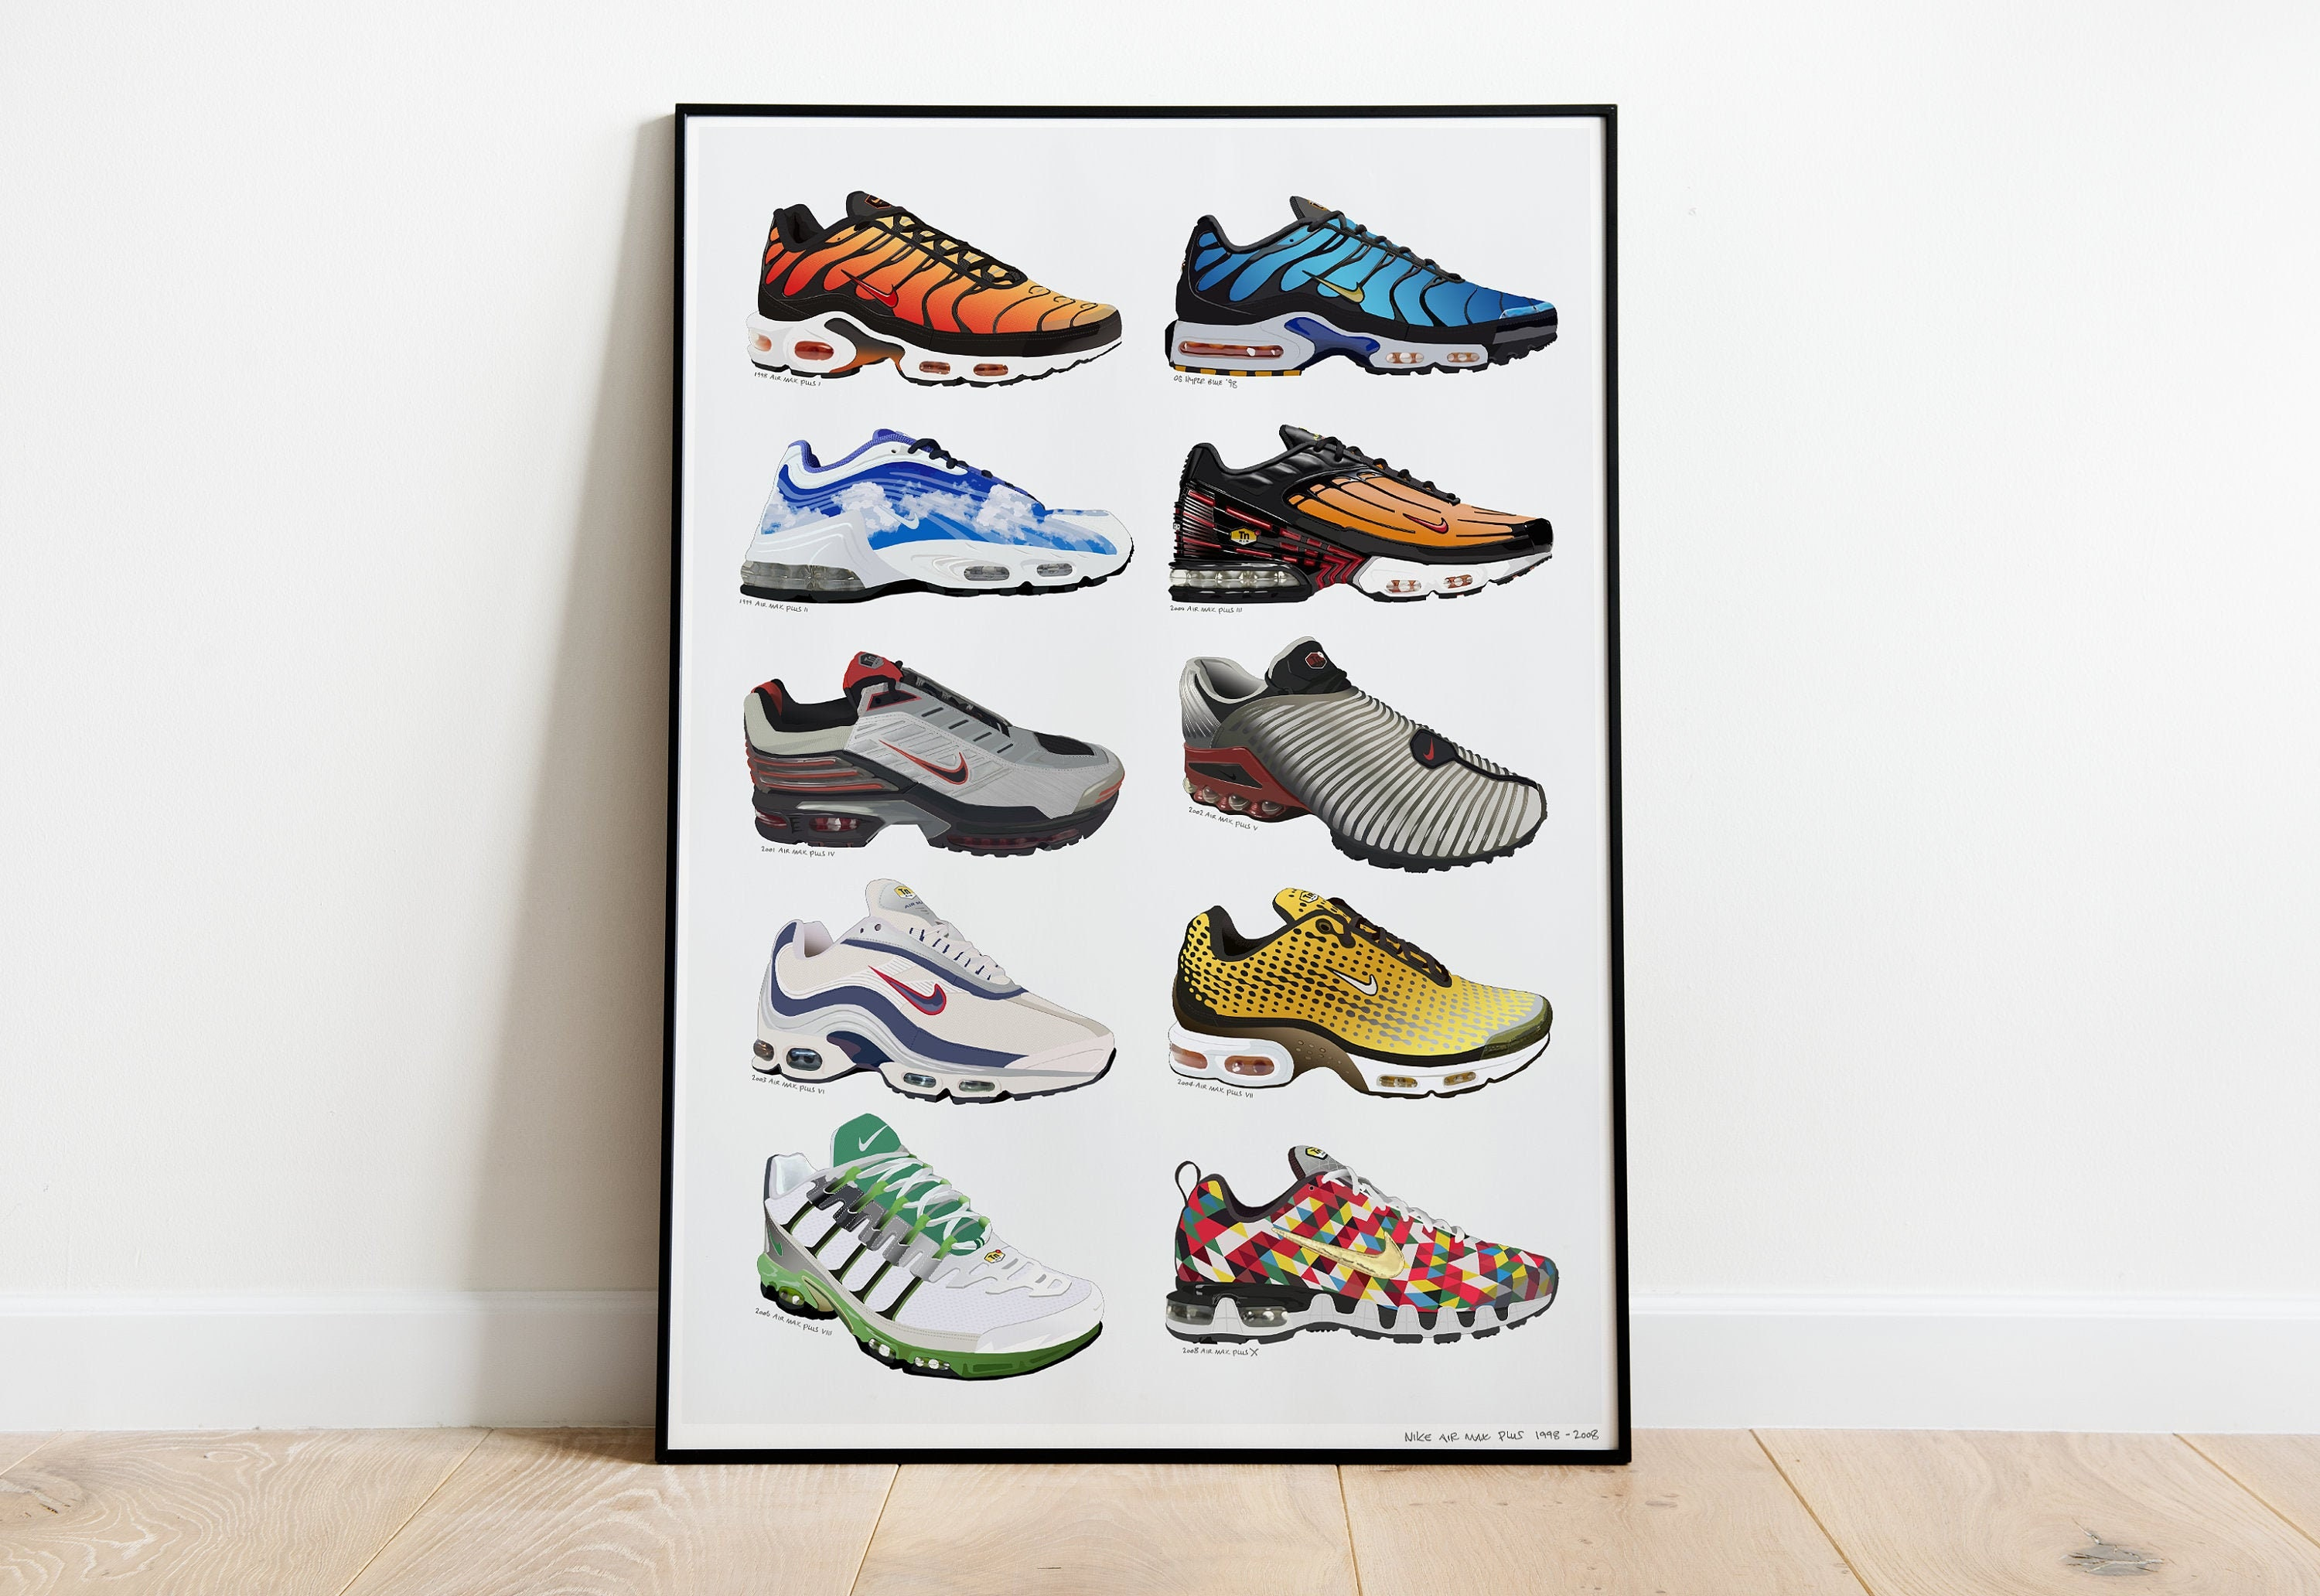 Nike TN History Poster 1998 -2008 Art Poster Air Max Plus tn Sneaker Illustration A4 or A3 | Signed by Artist & FREE GIFT